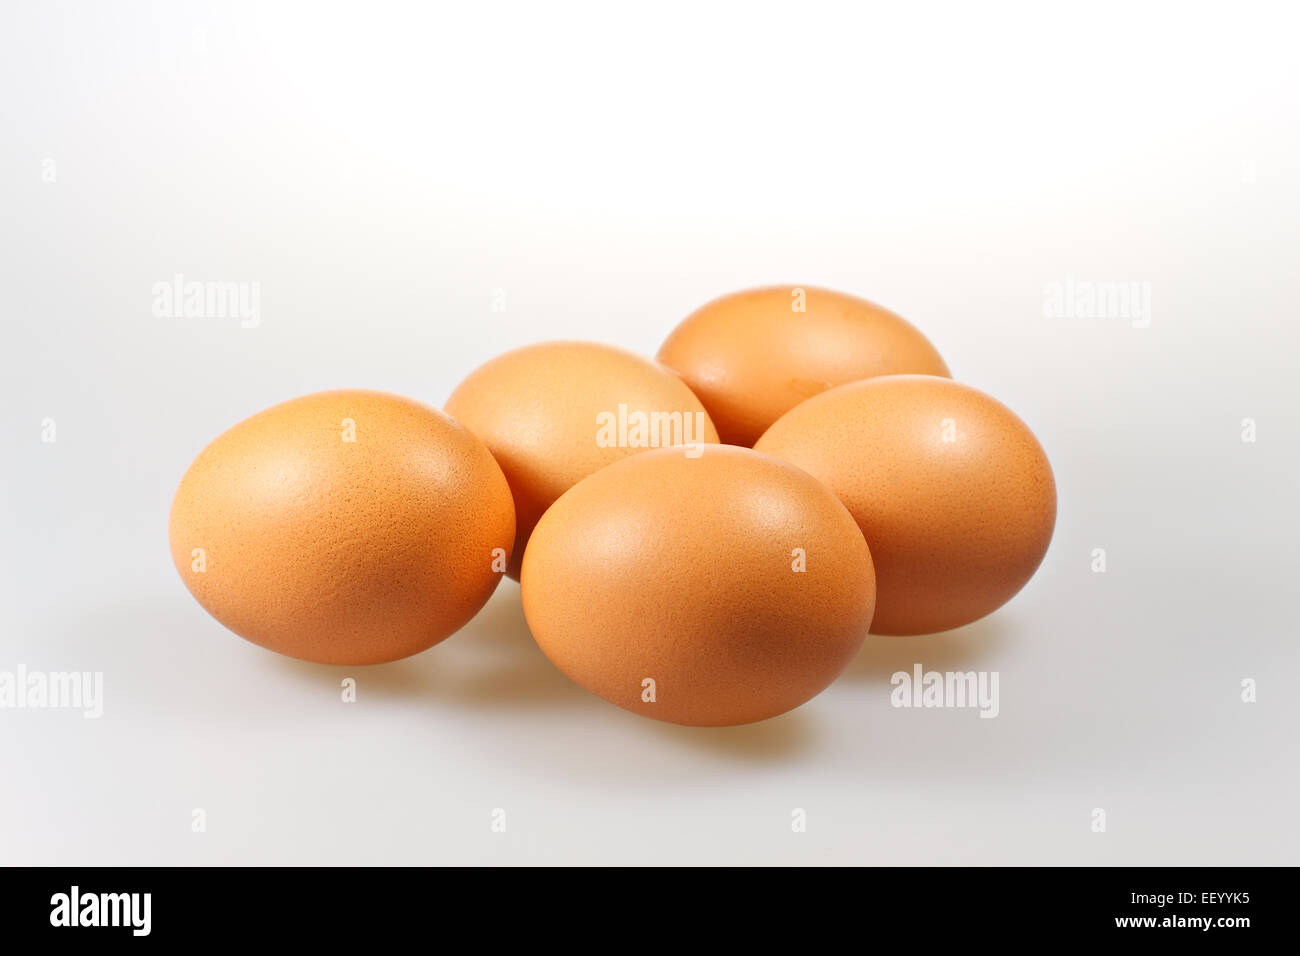 Five eggs lying. - Stock Image